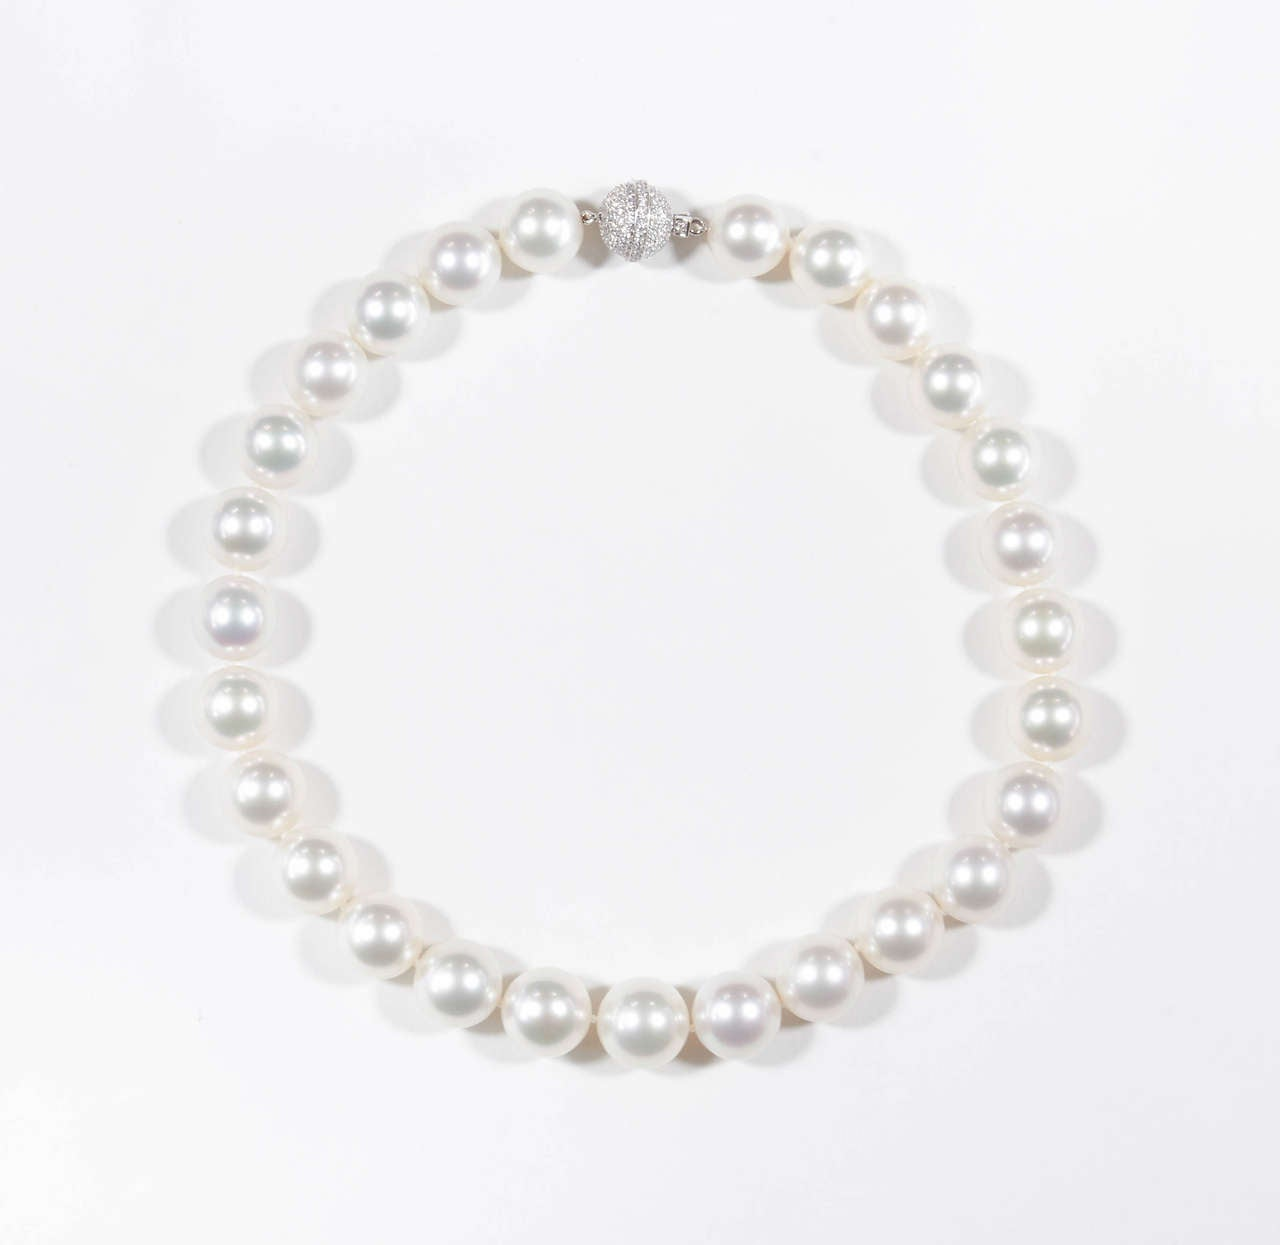 Important South Sea Pearl Necklace with Diamond Clasp 2